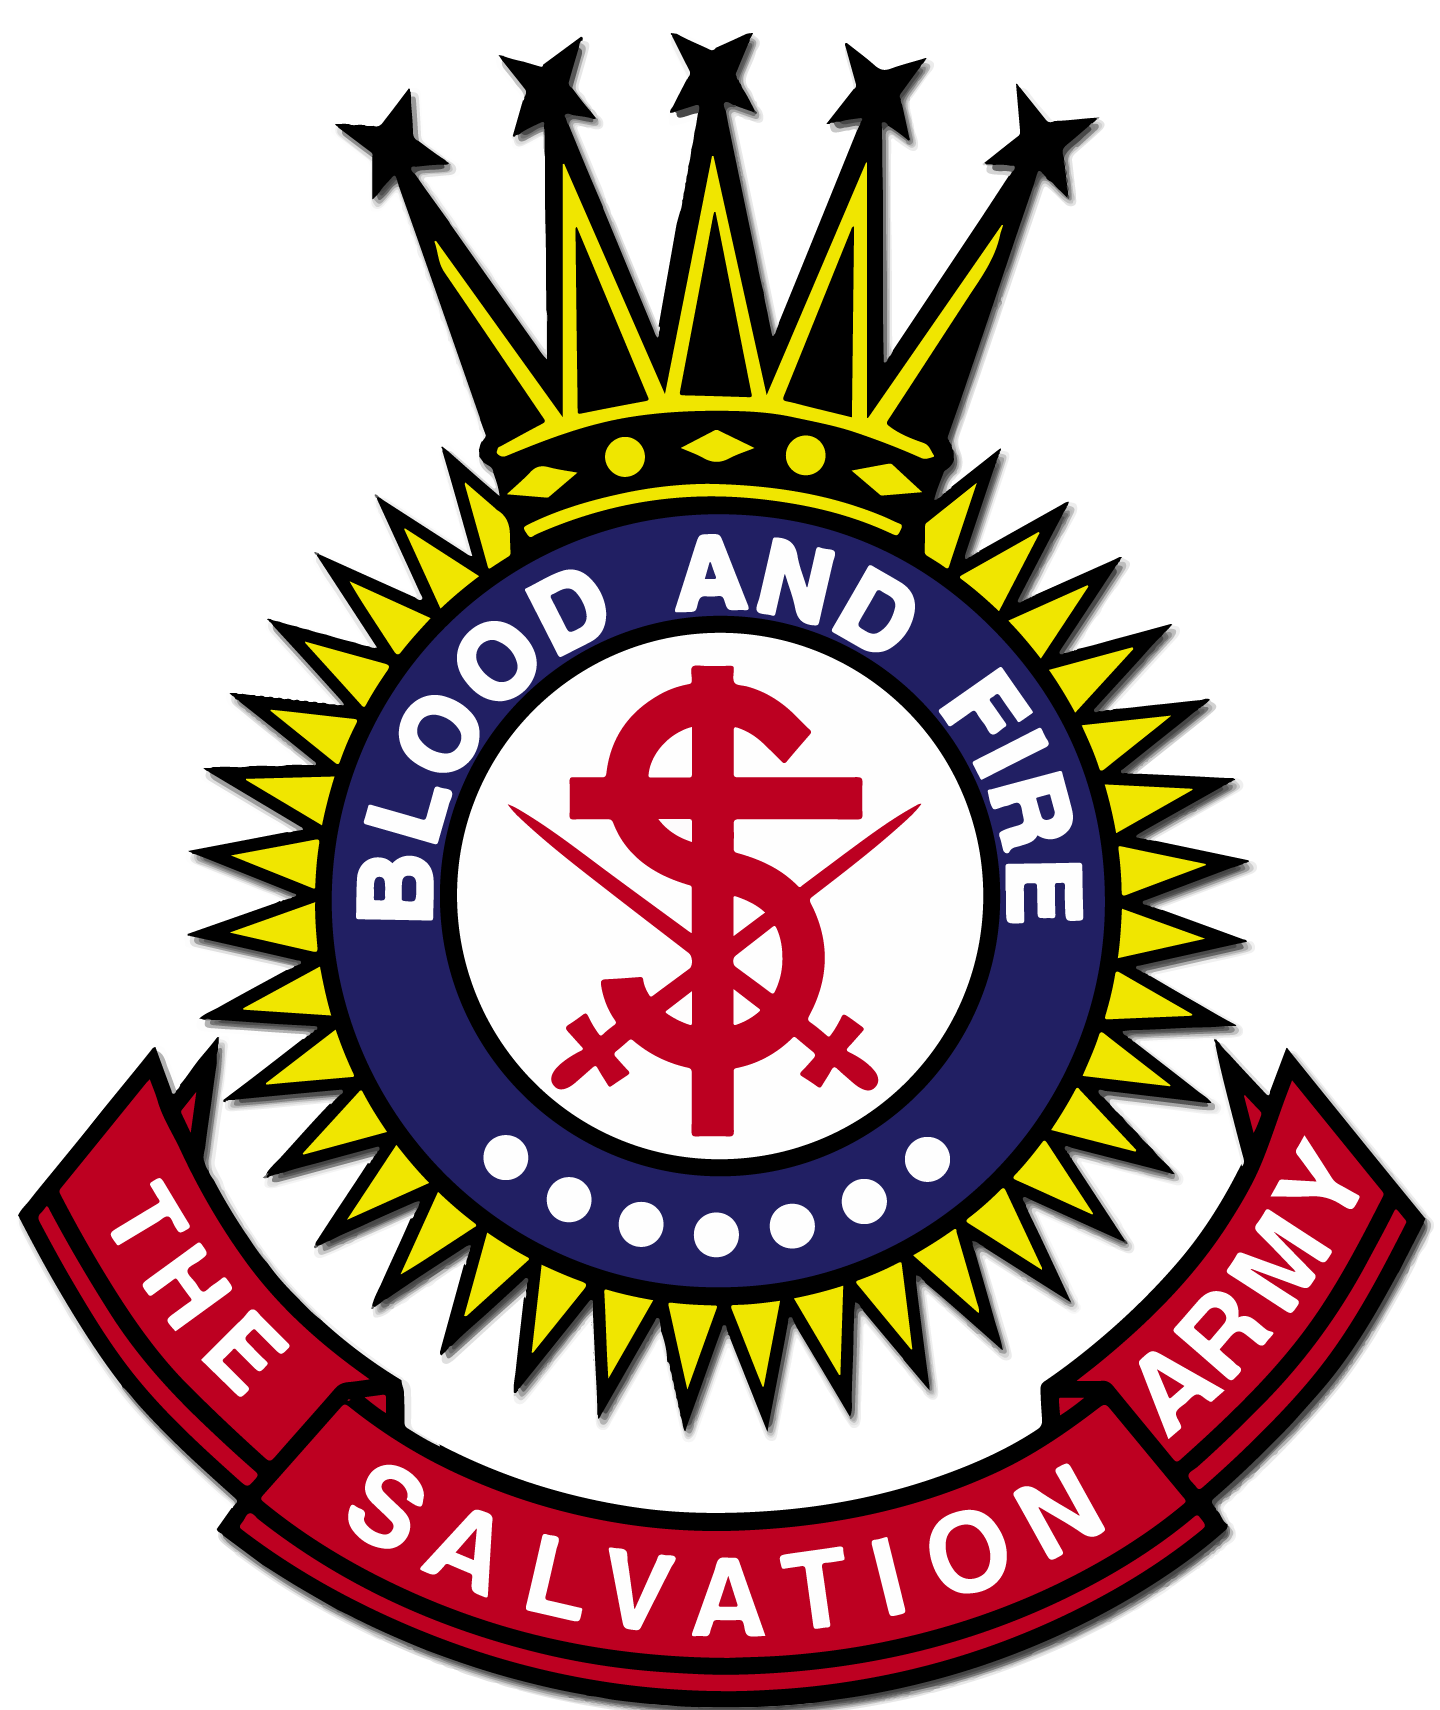 Salvation army crest png. Of montgomery al contact